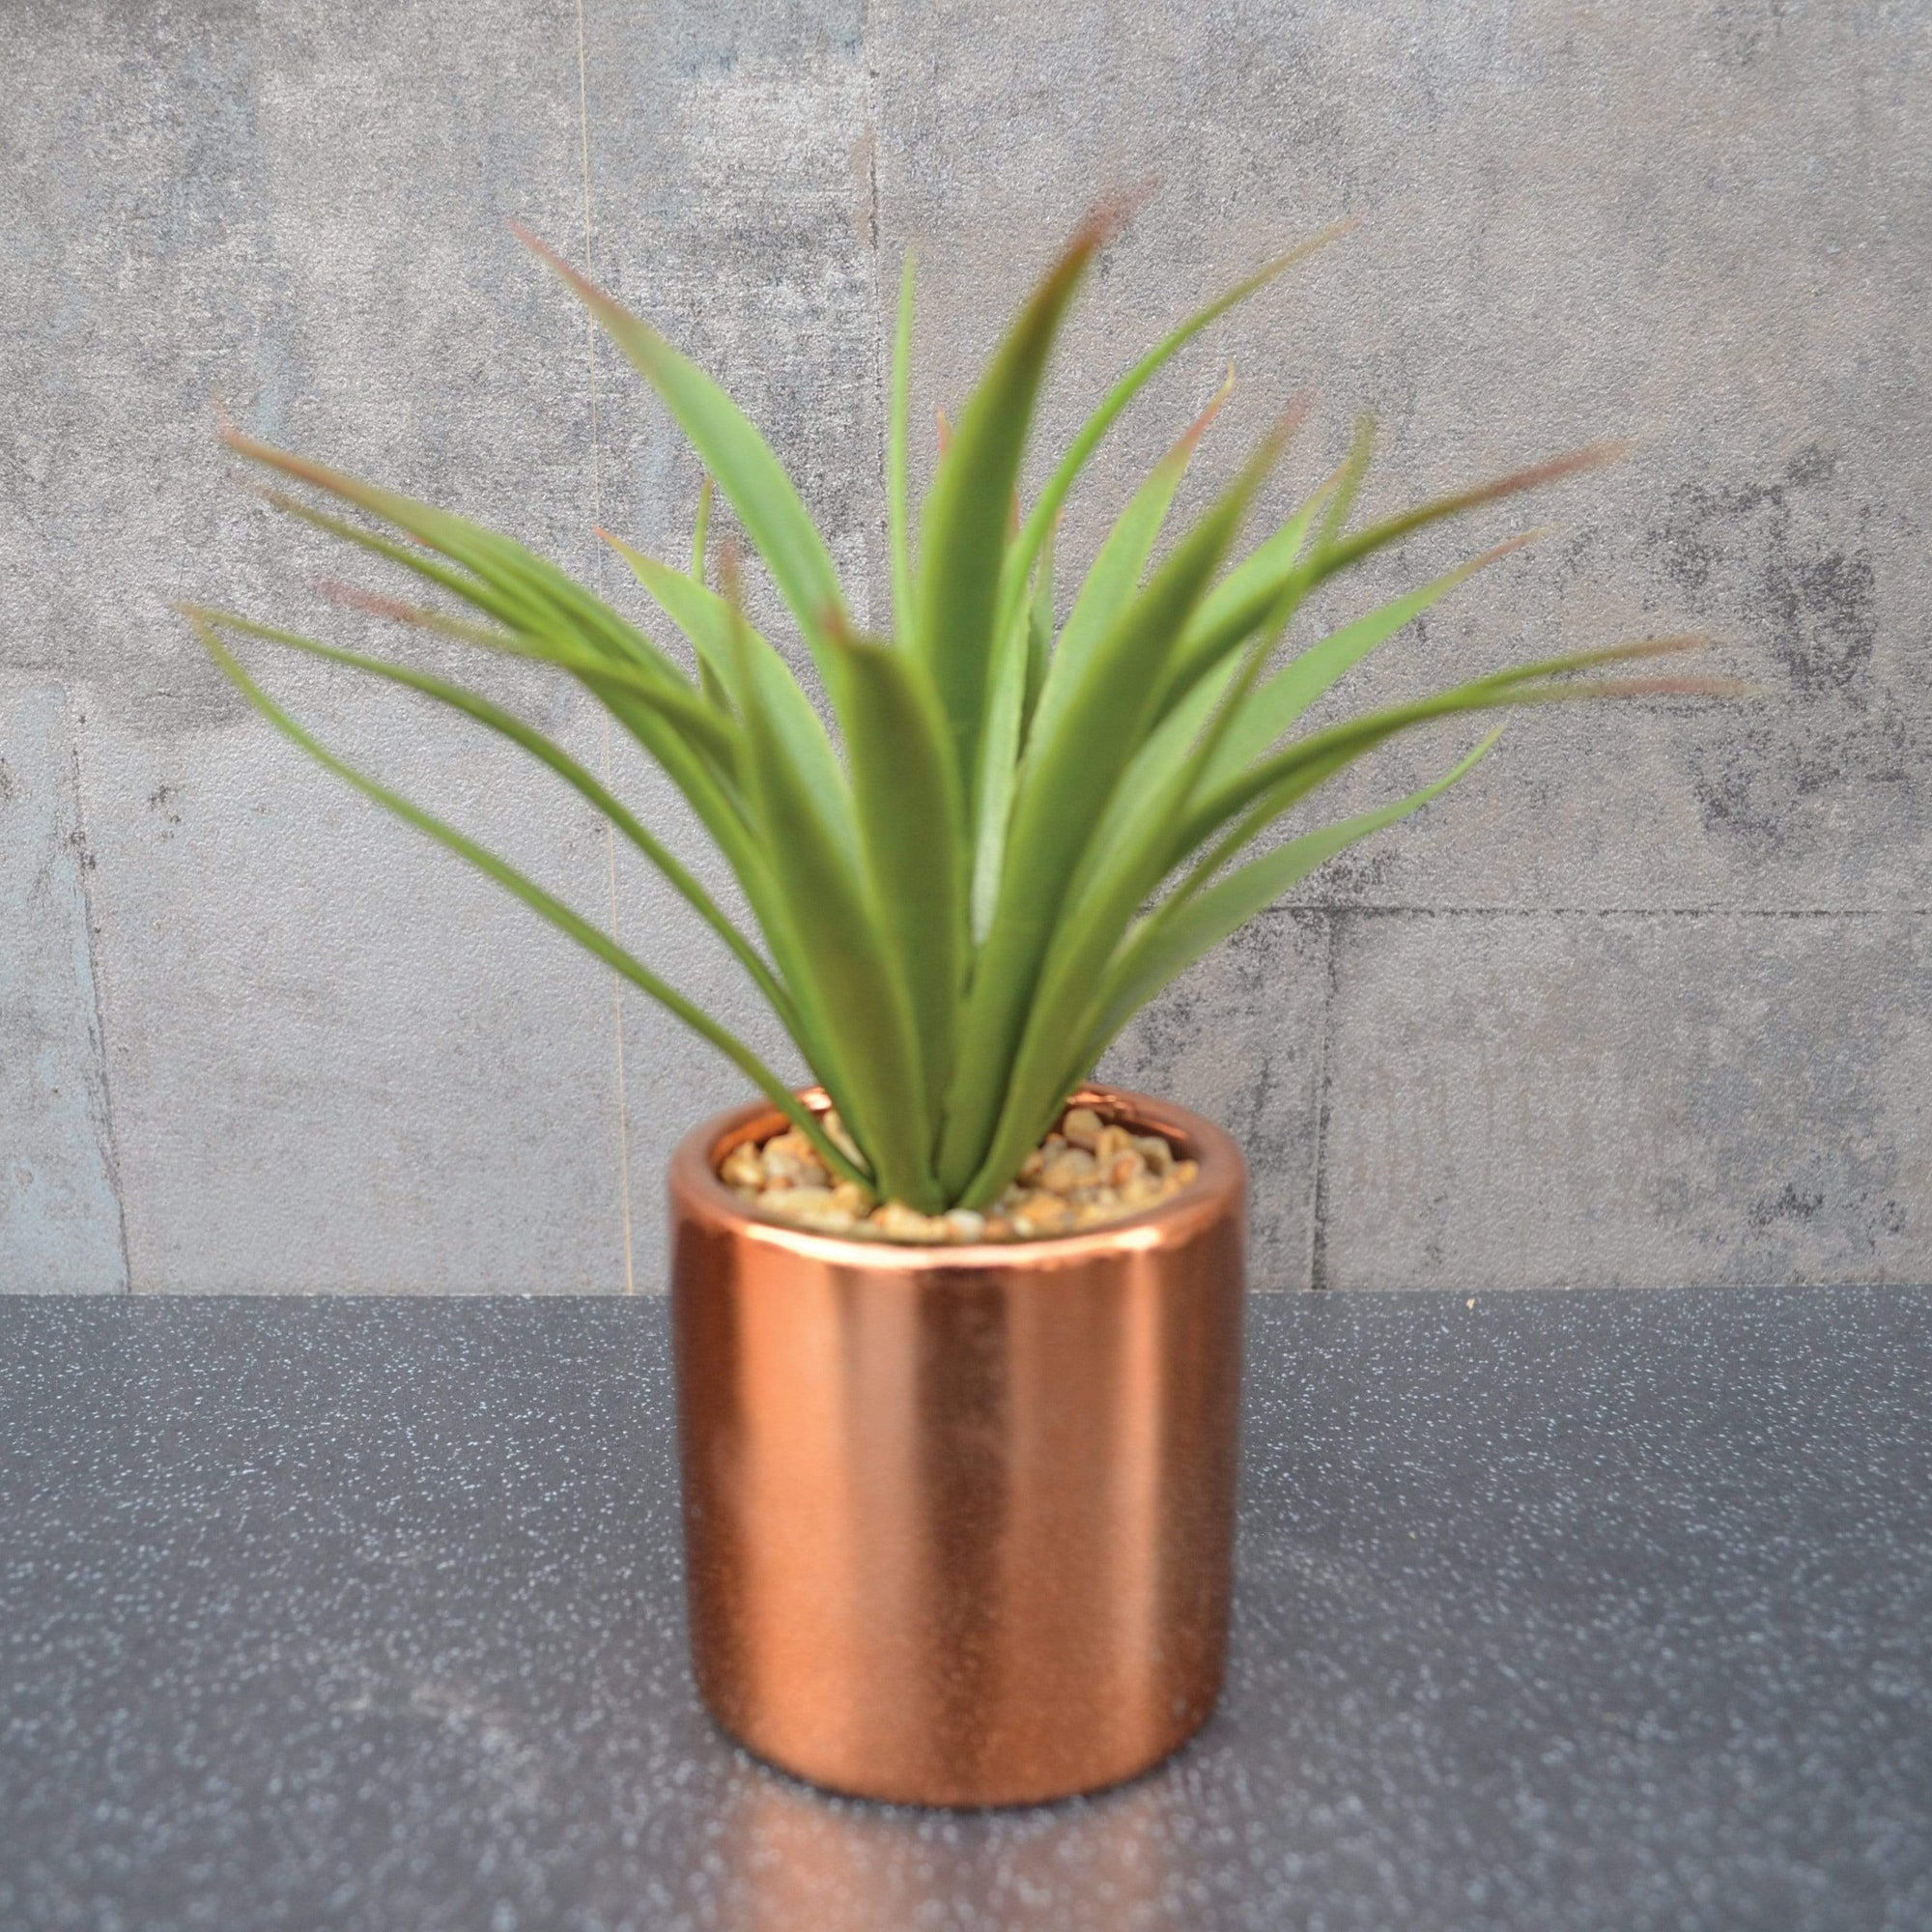 Candlelight Home Artificial Plants & Flowers Aloe Vera Artificial Plant in Pot Copper 17cm 12PK